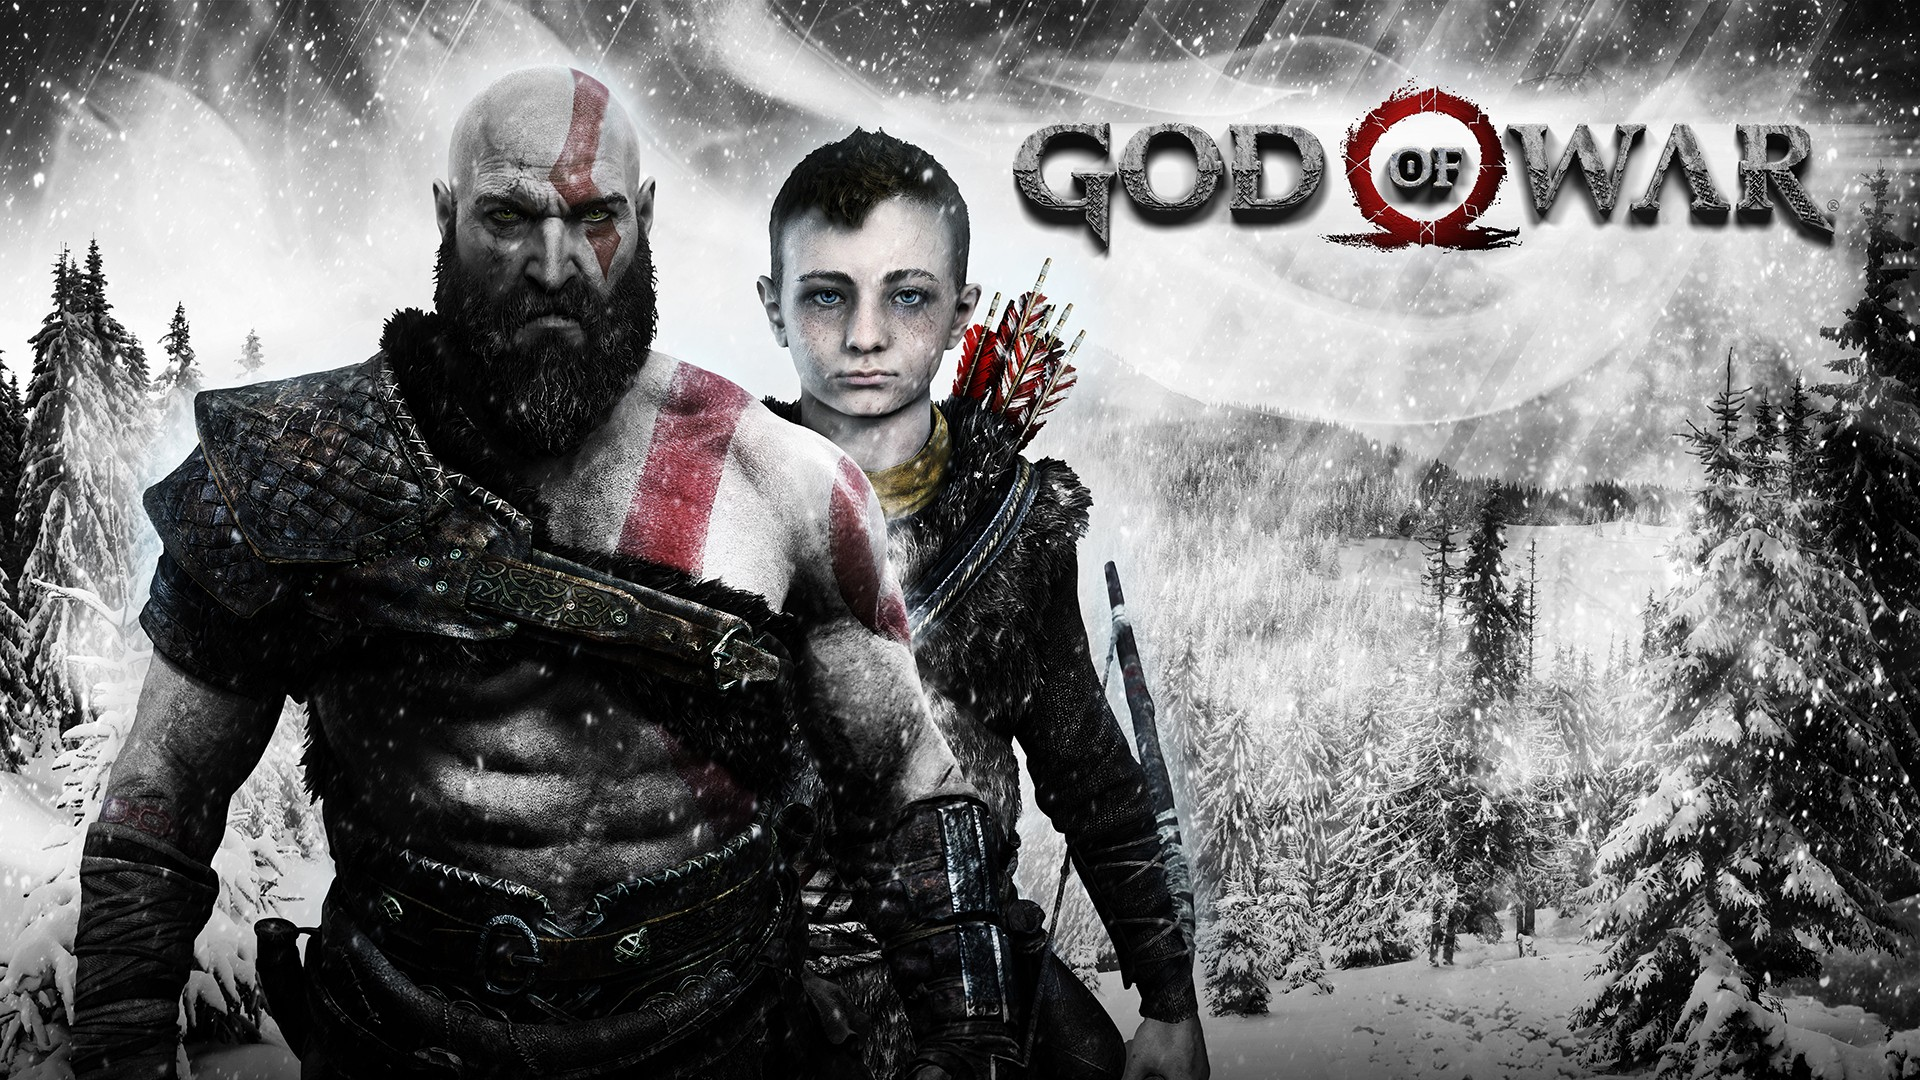 God Of War Son Of Kratos Wallpaper Image High Quality